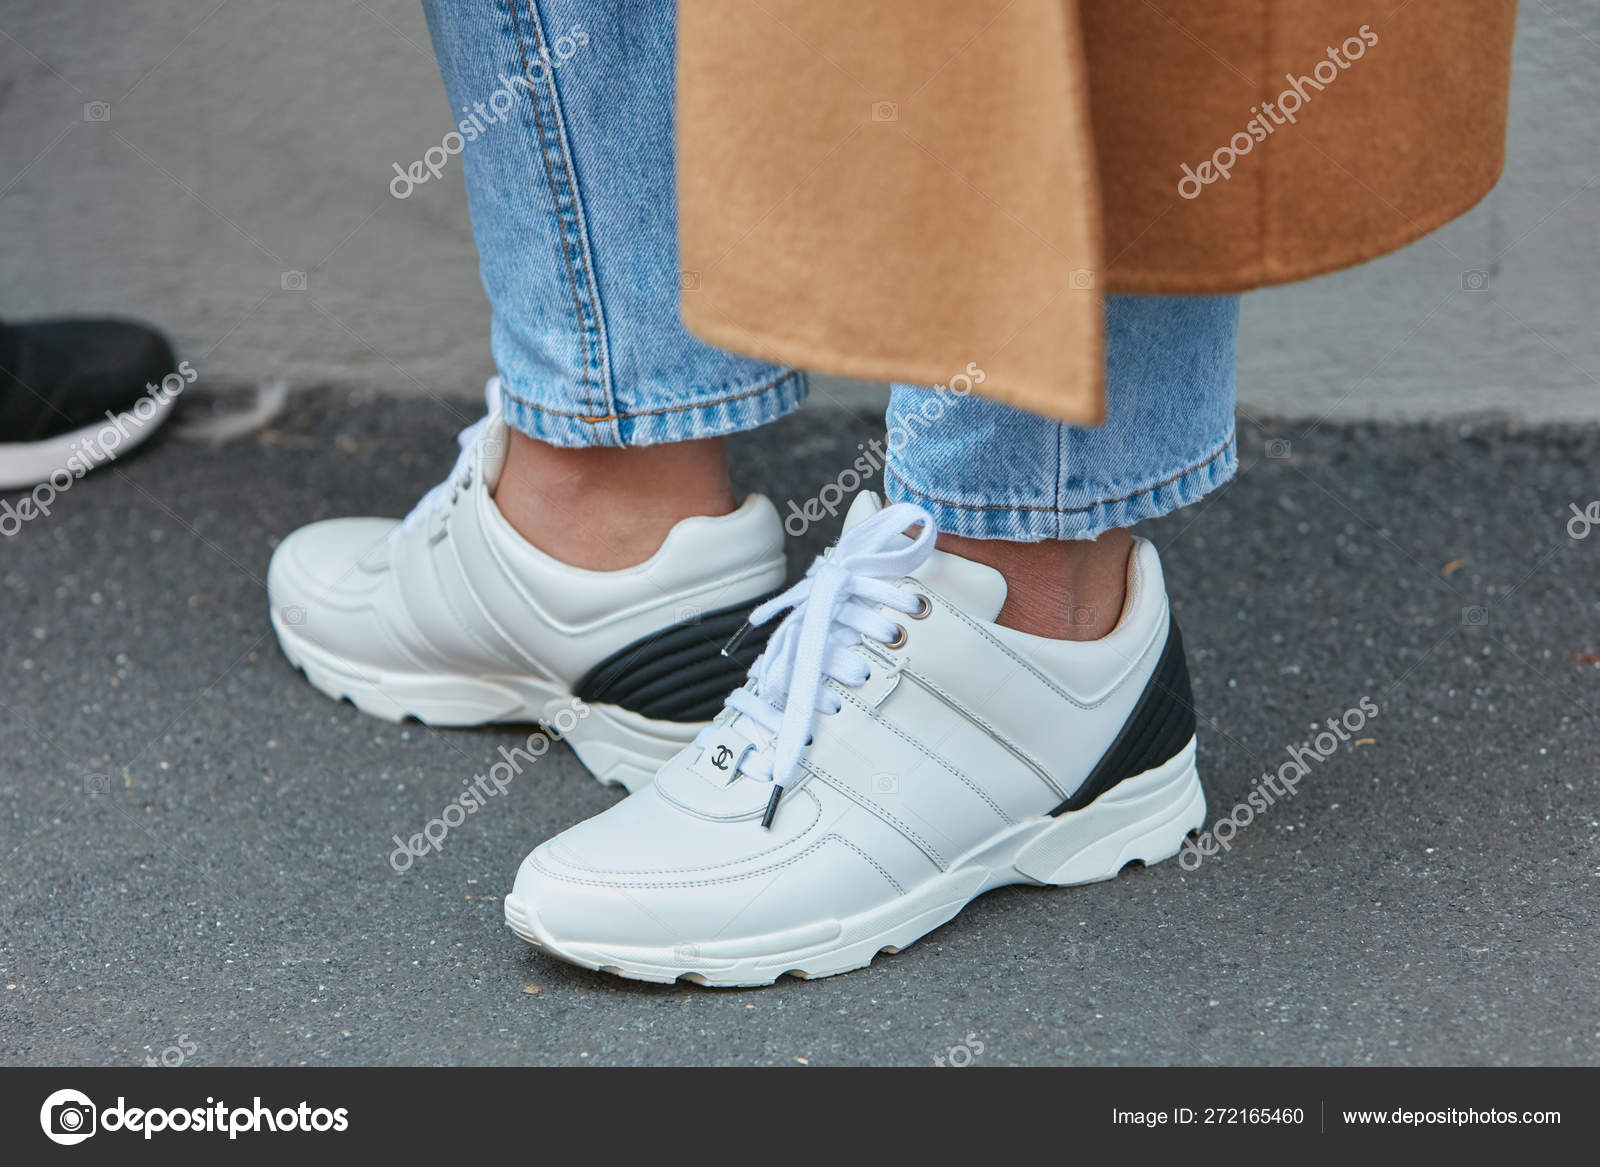 Woman with white Chanel shoes and blue